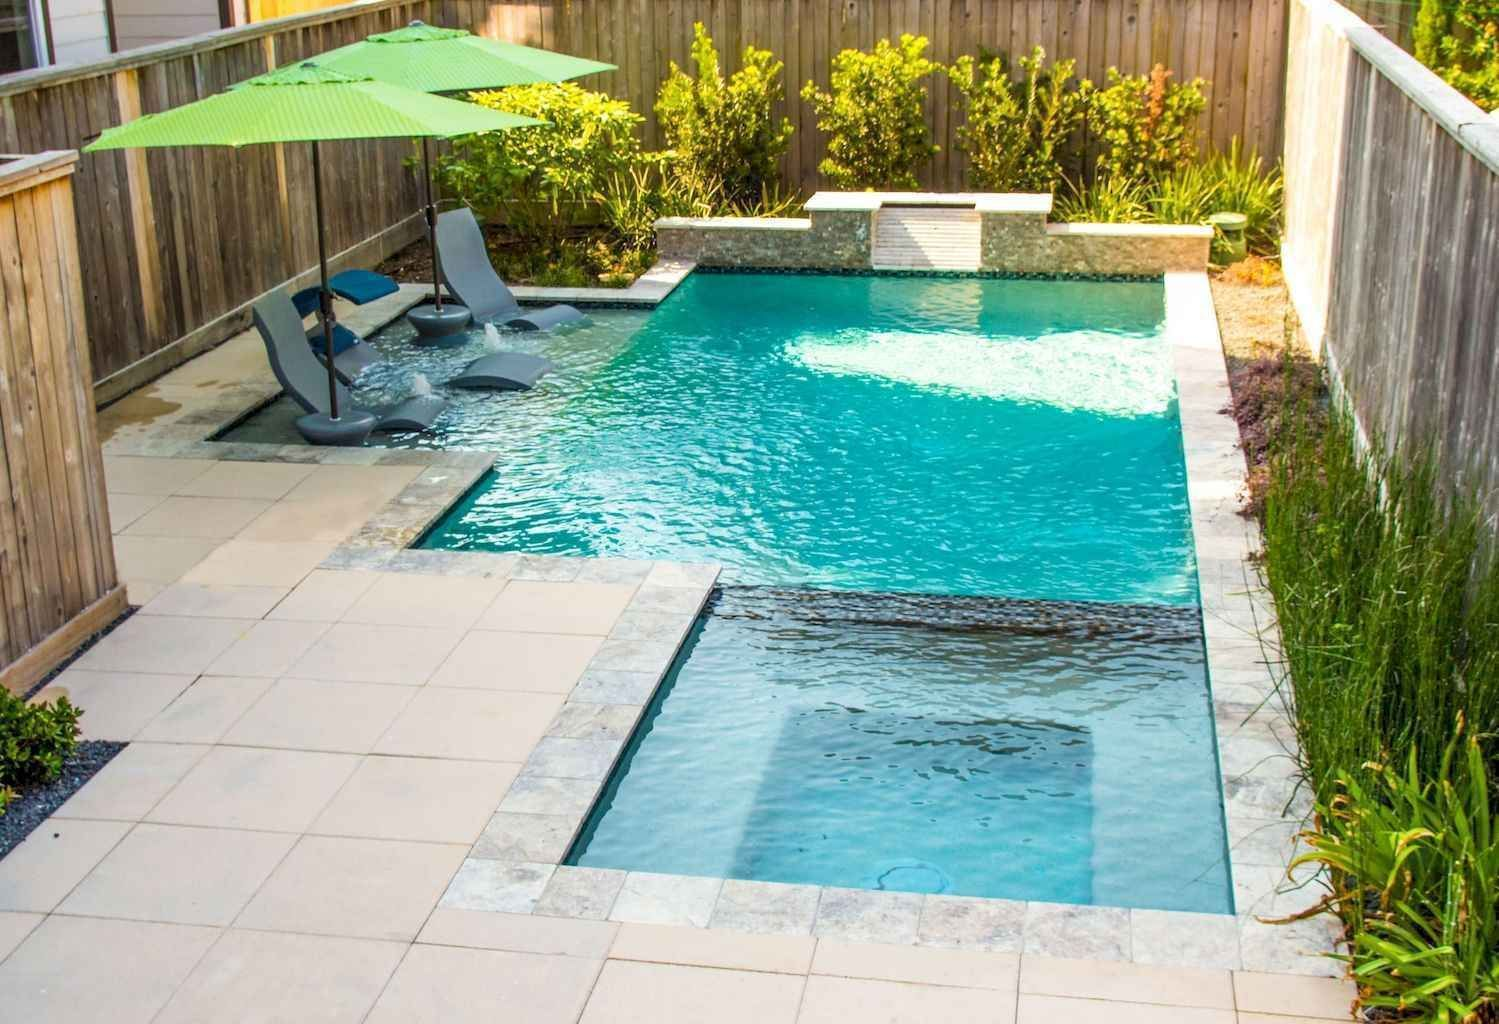 Small Backyard Swimming Pool Ideas And Design 30 Small Backyard Pools Backyard Pool Landscaping Backyard Pool Designs